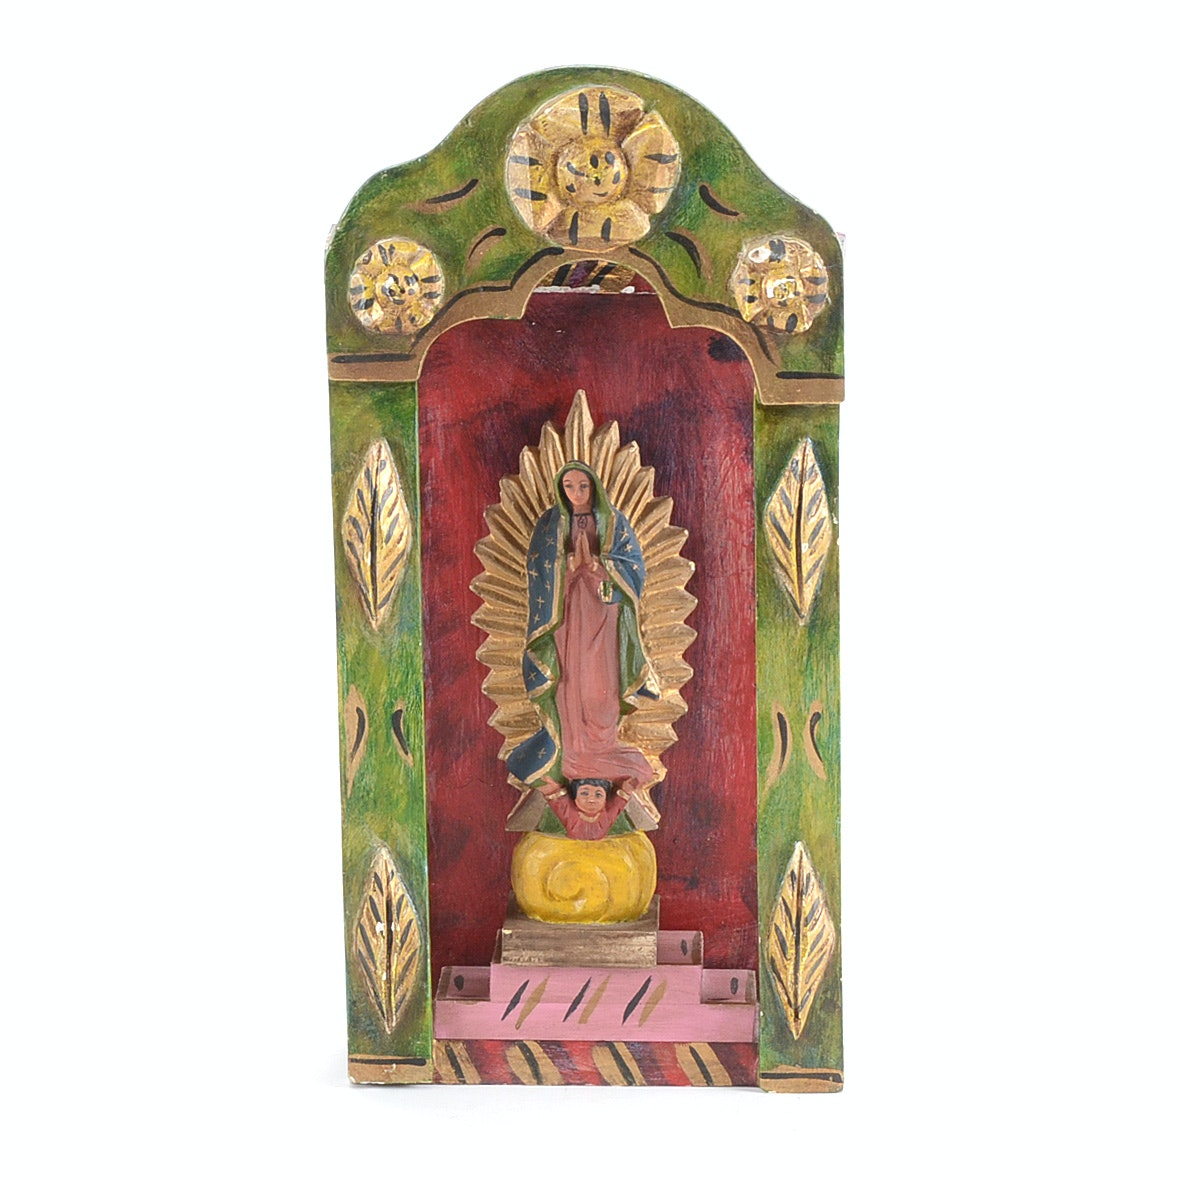 Our Lady of Guadalupe Folk Art Shrine